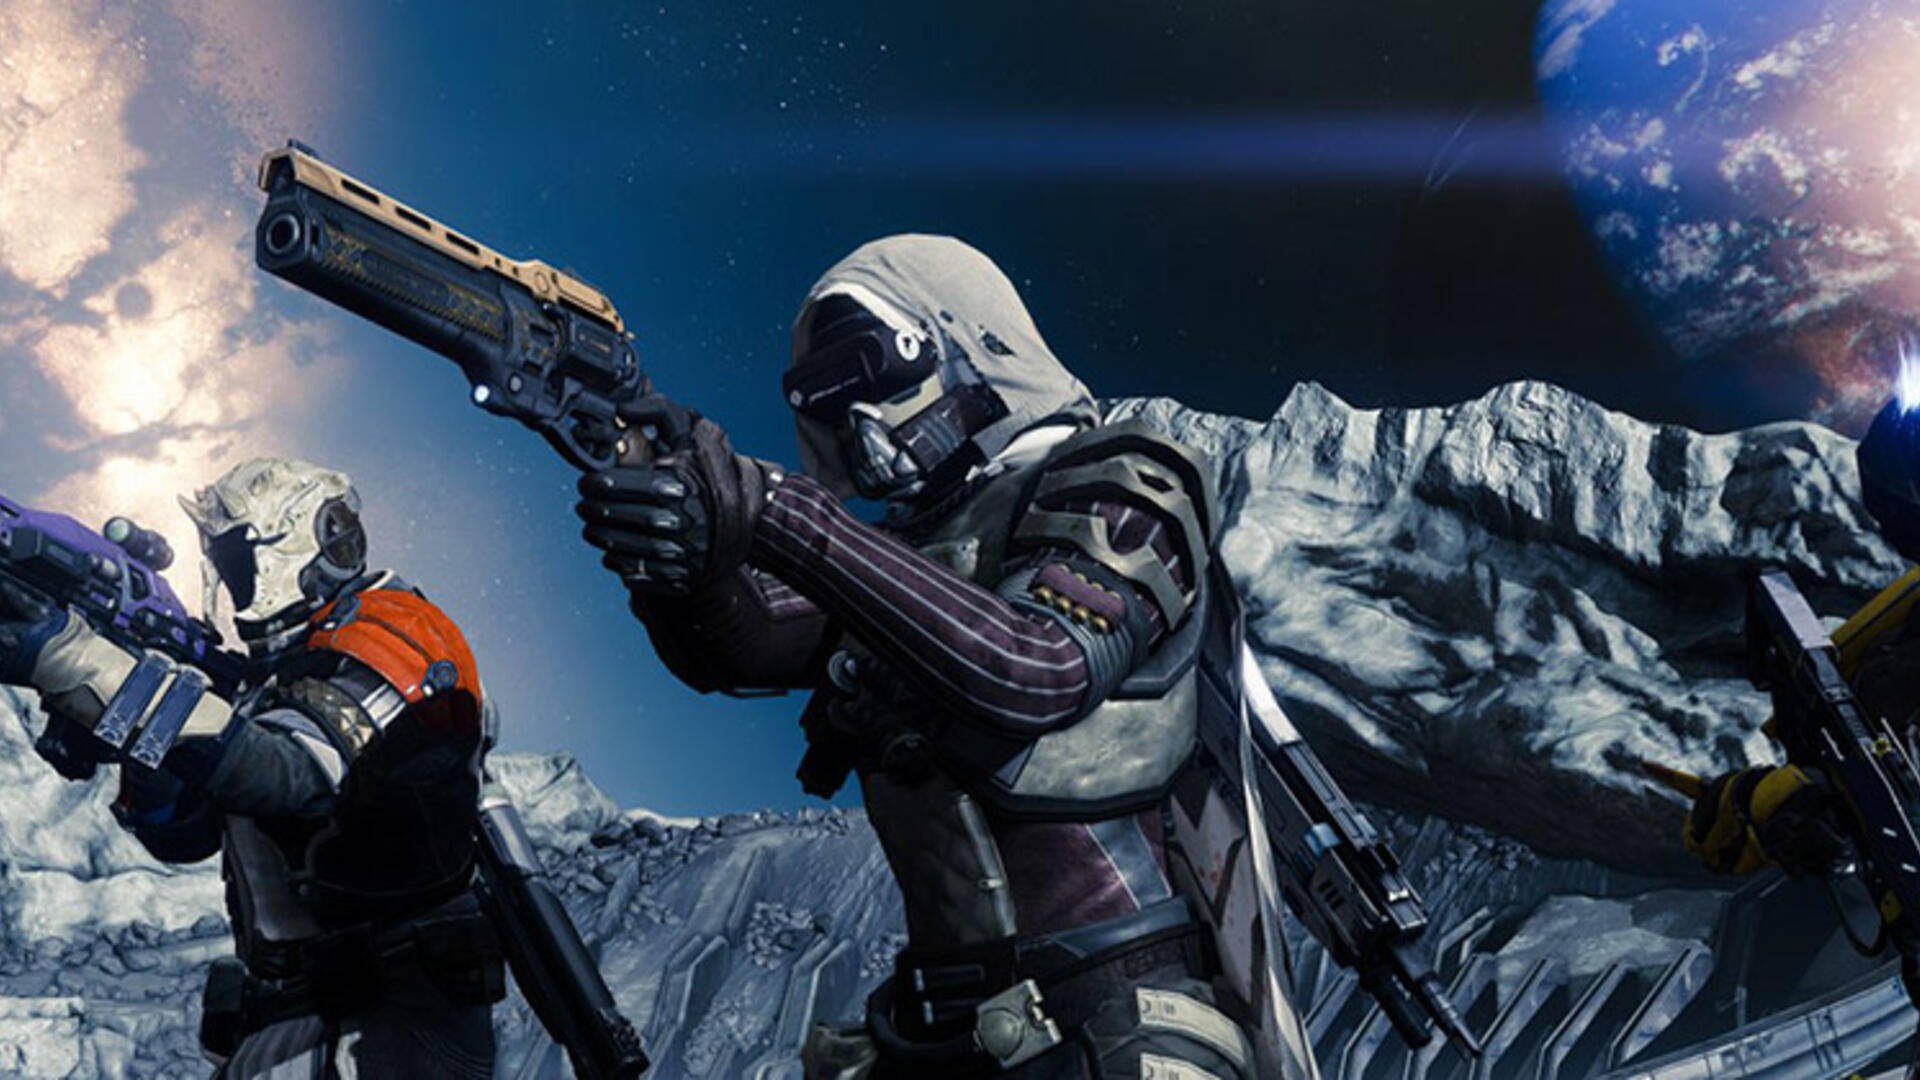 Destiny Comes to an End with the Age of Triumph